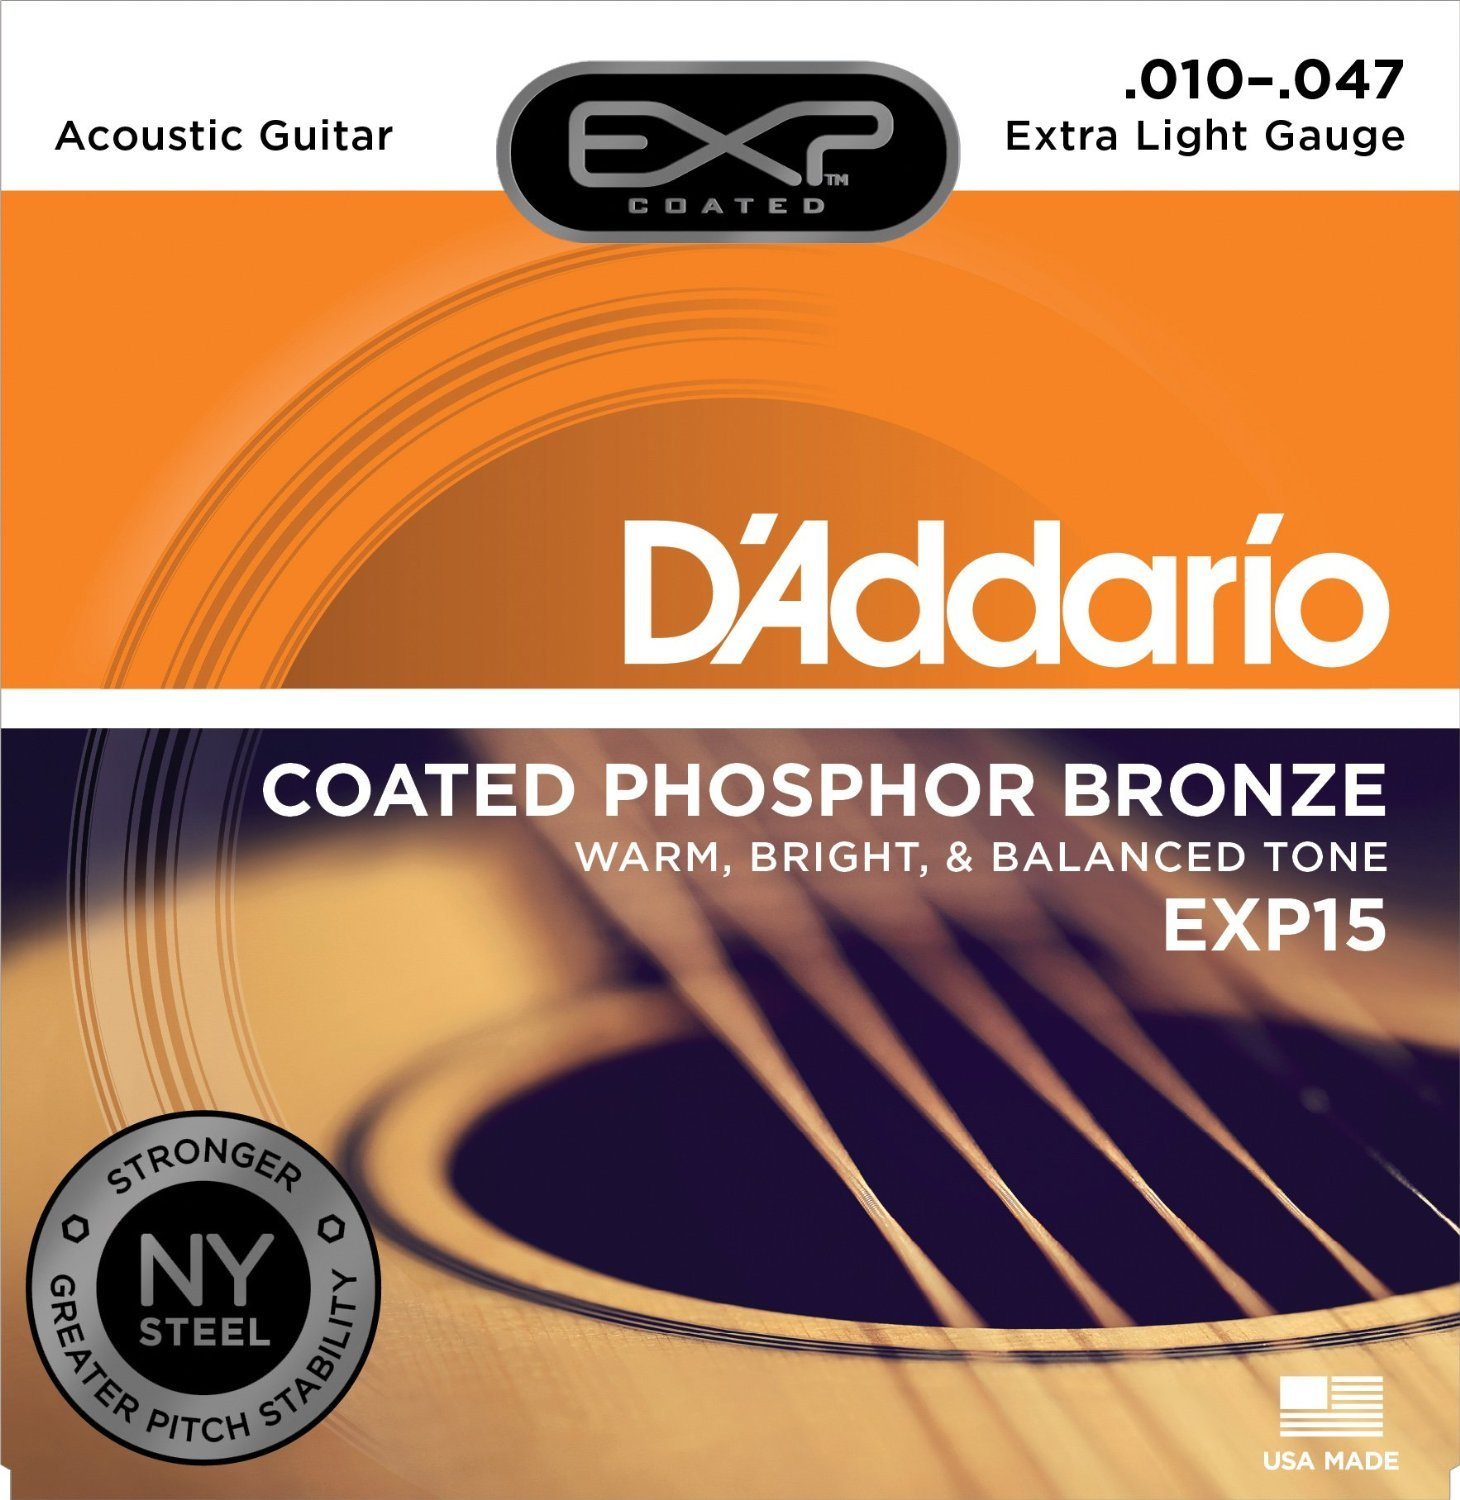 D'Addario EXP15 with NY Steel Phosphor Bronze Acoustic Guitar Strings, Coated, Extra Light, 10-47 D'Addario &Co. Inc